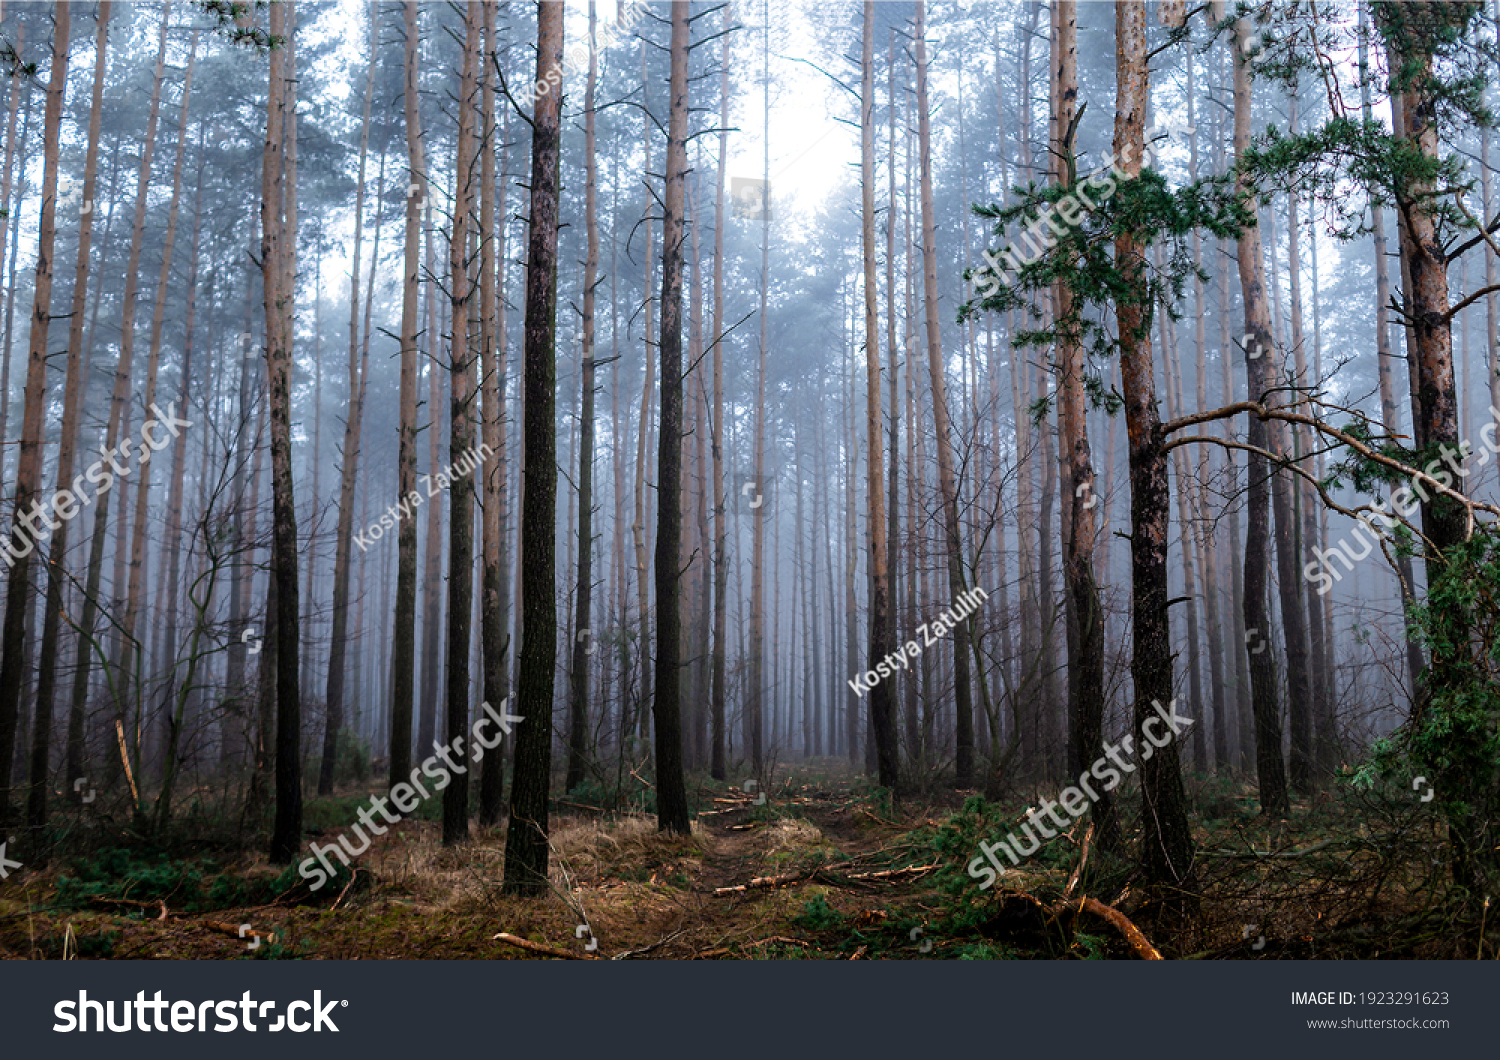 Forest mist trees background. Misty forest trees. Forest in mist. Forest mist background #1923291623